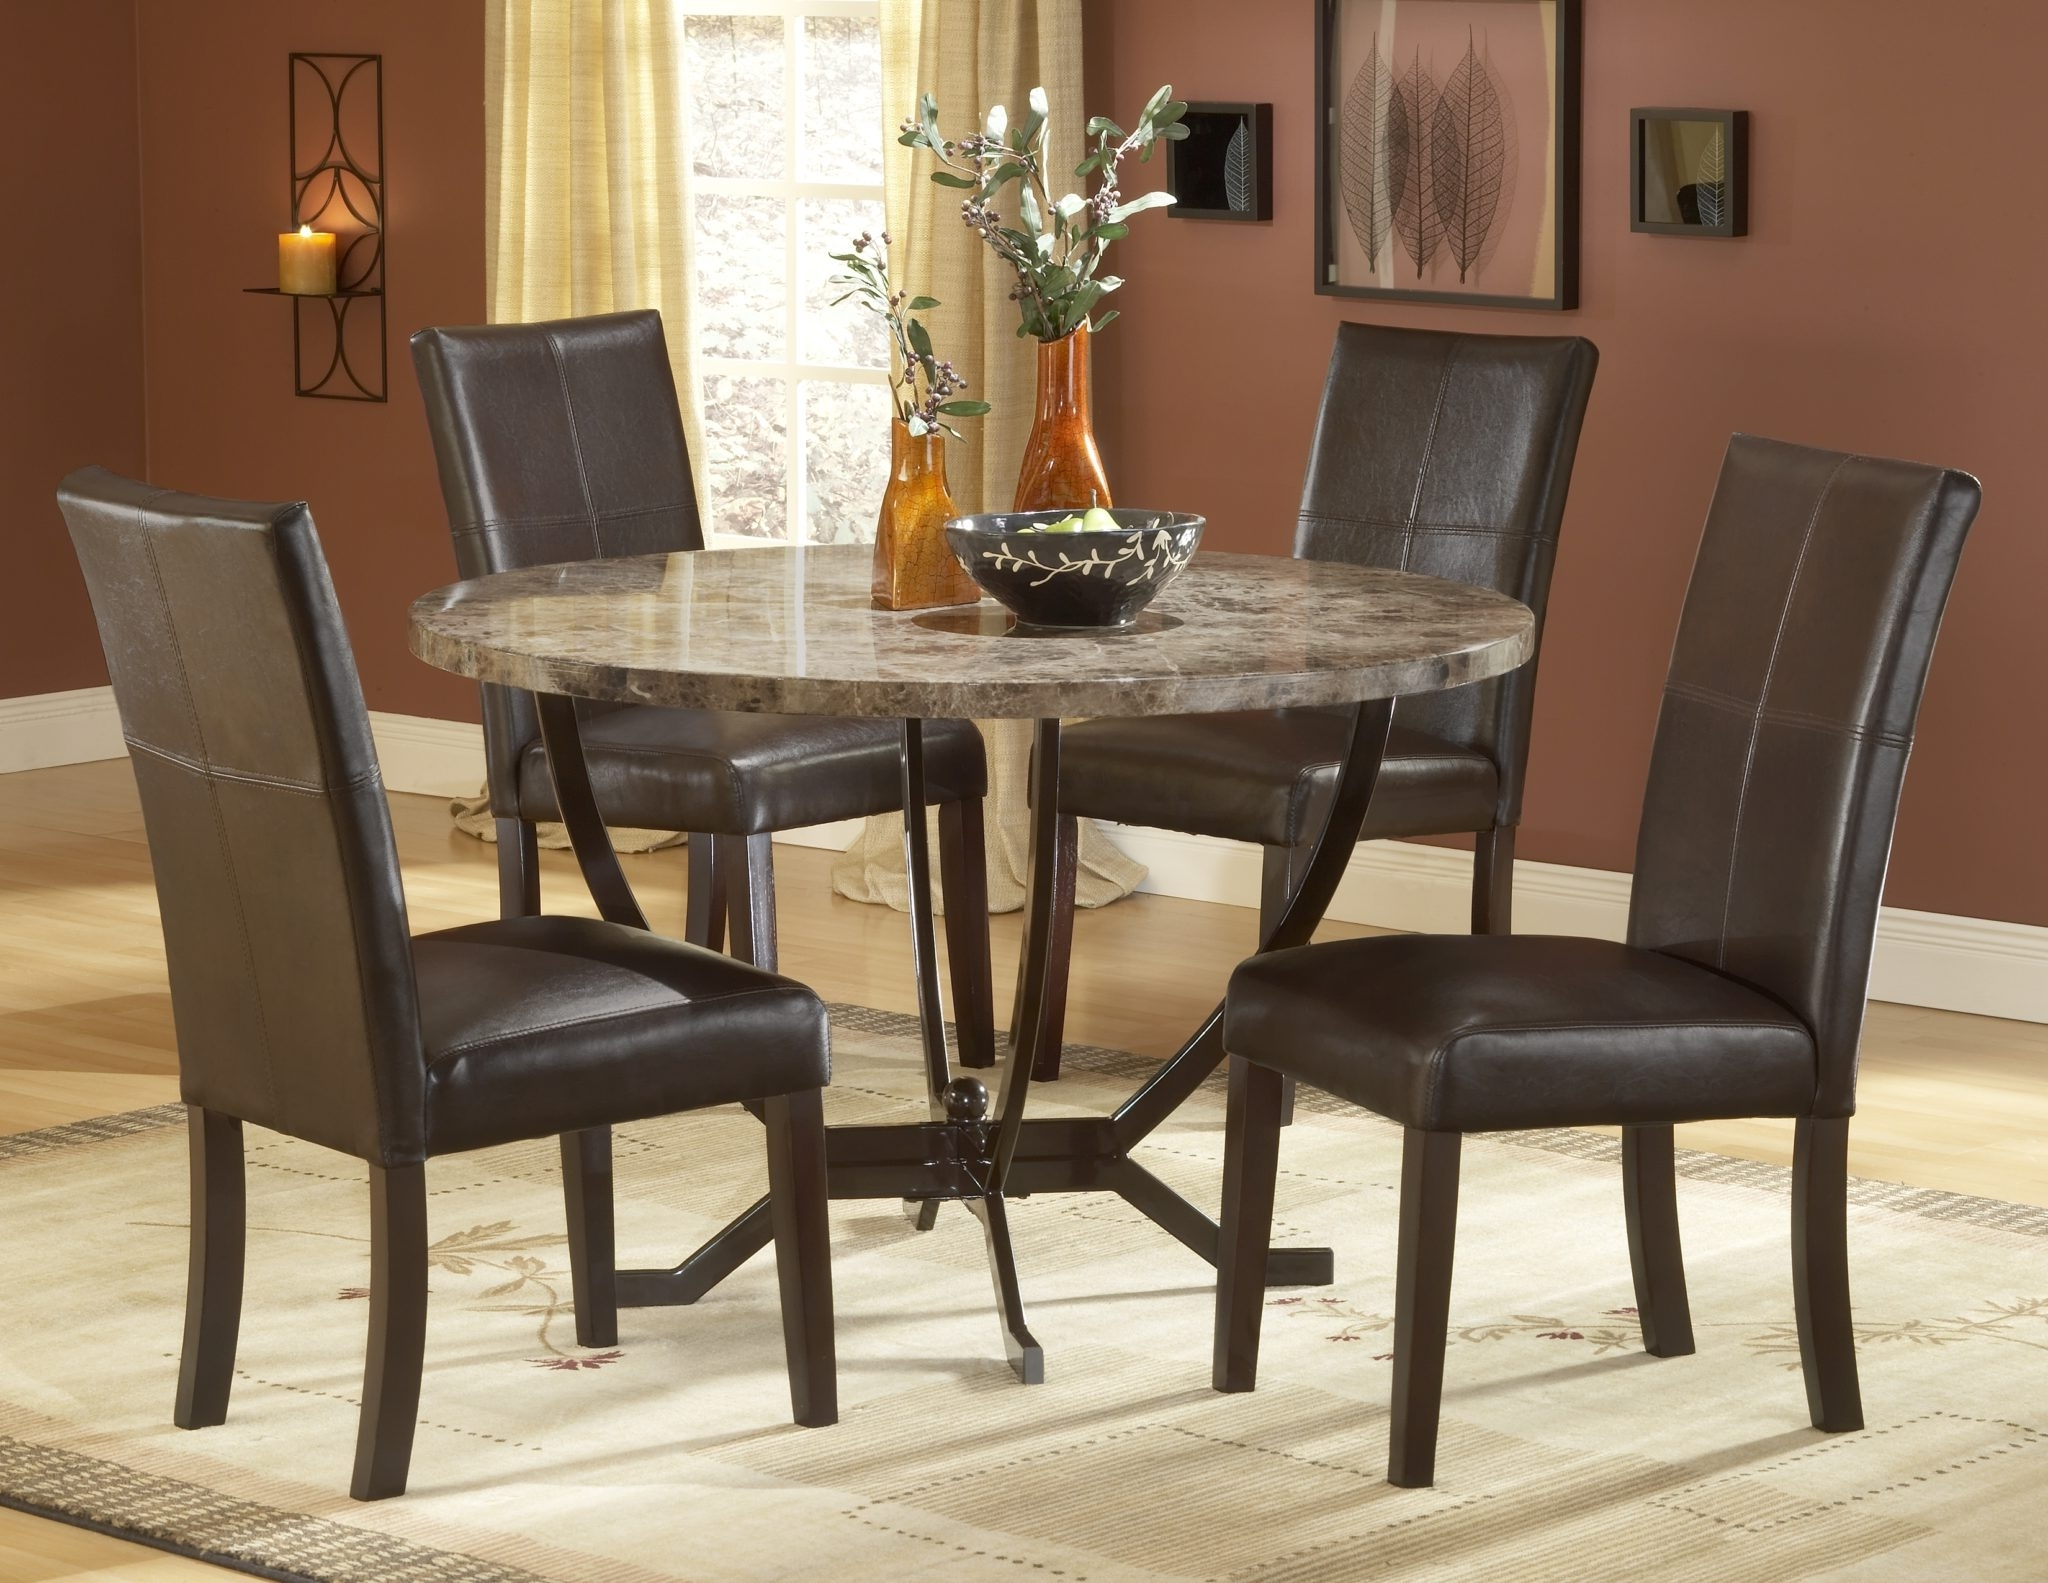 table images seater round starrkingschool attractive chairs and size cool for with dining dimensions